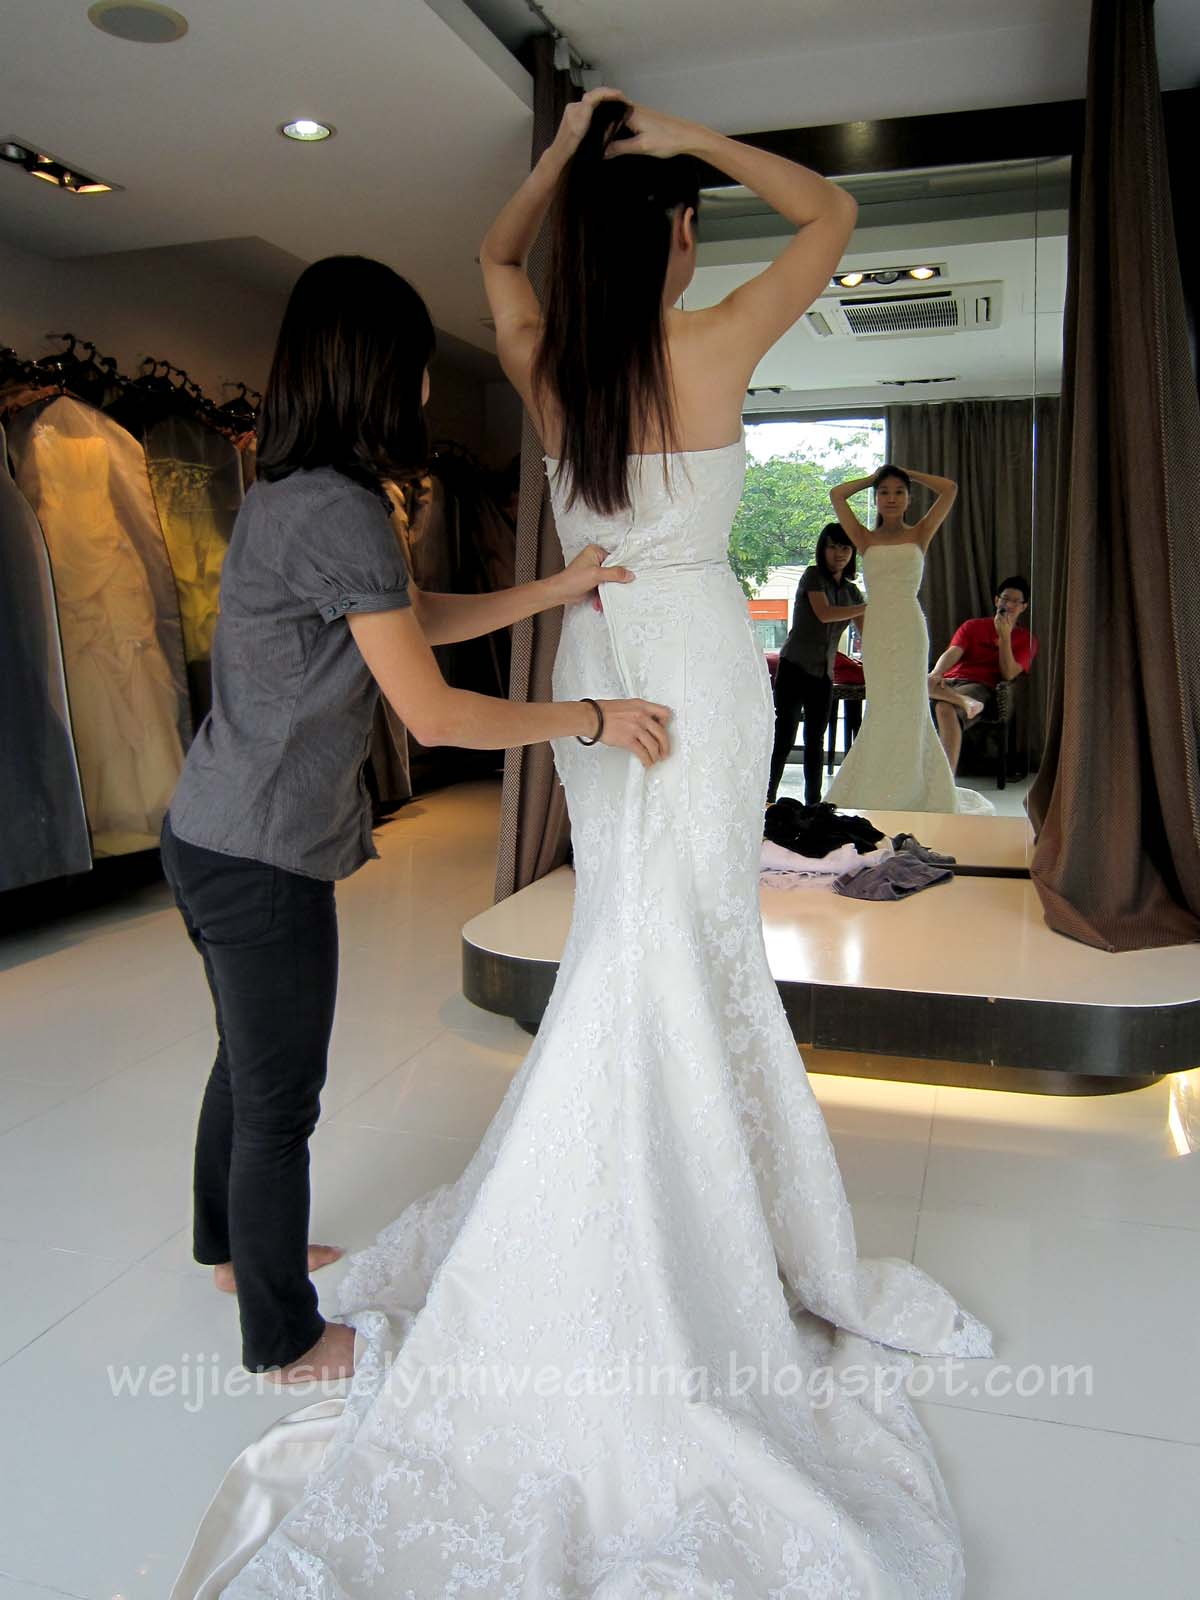 Trying On Wedding Gowns Part 2